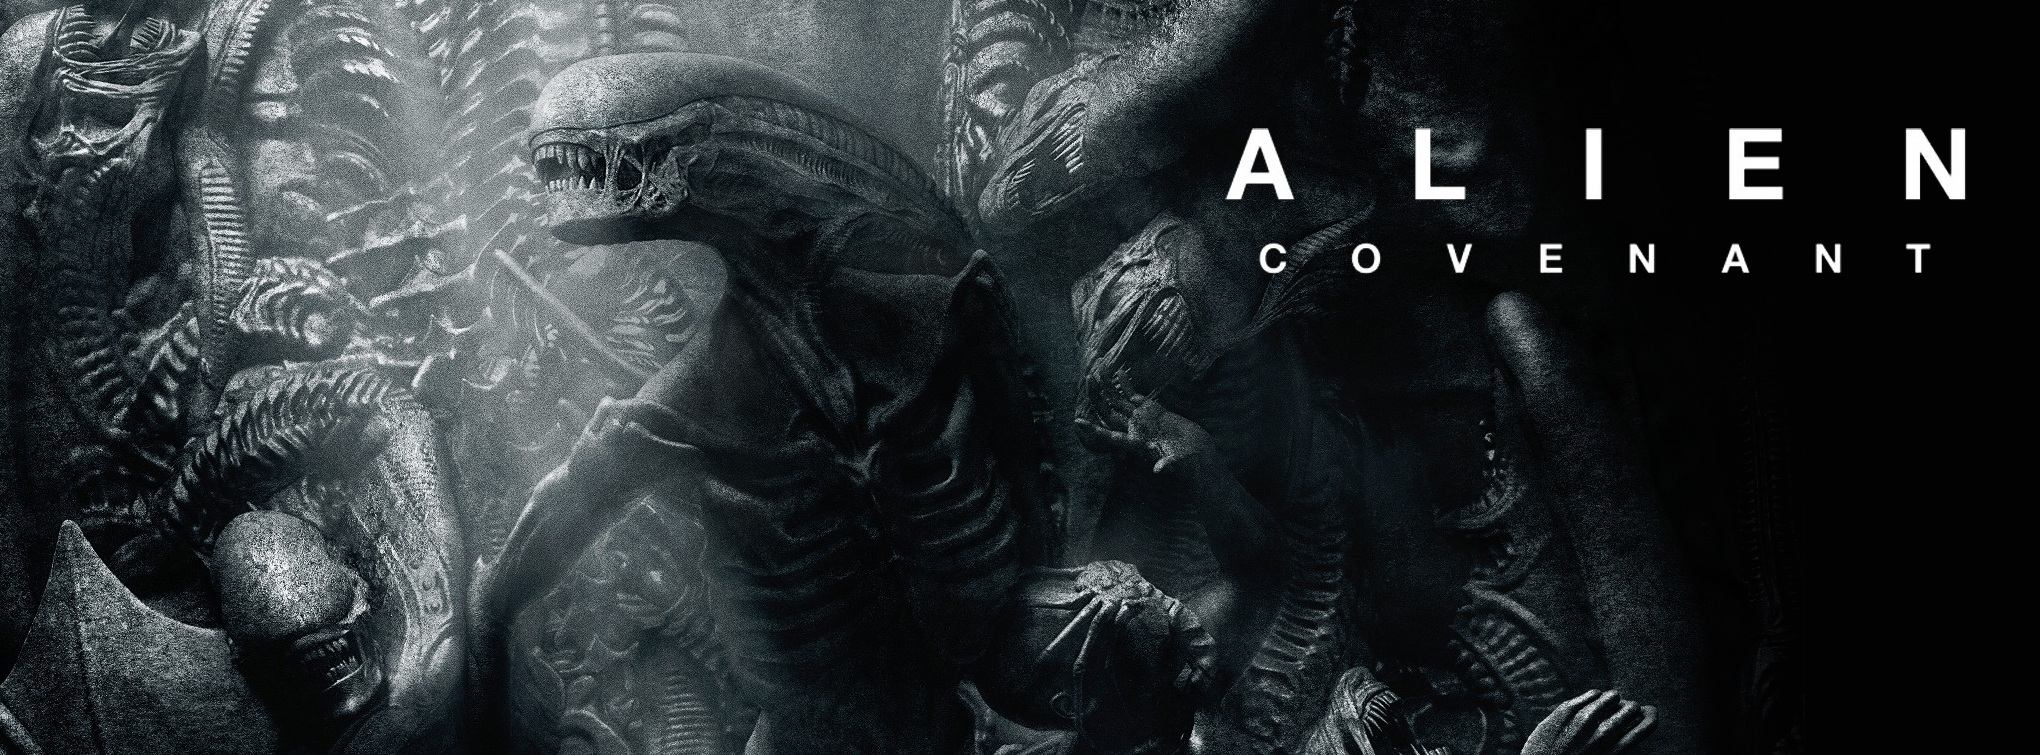 Alien: Covenant is now playing!